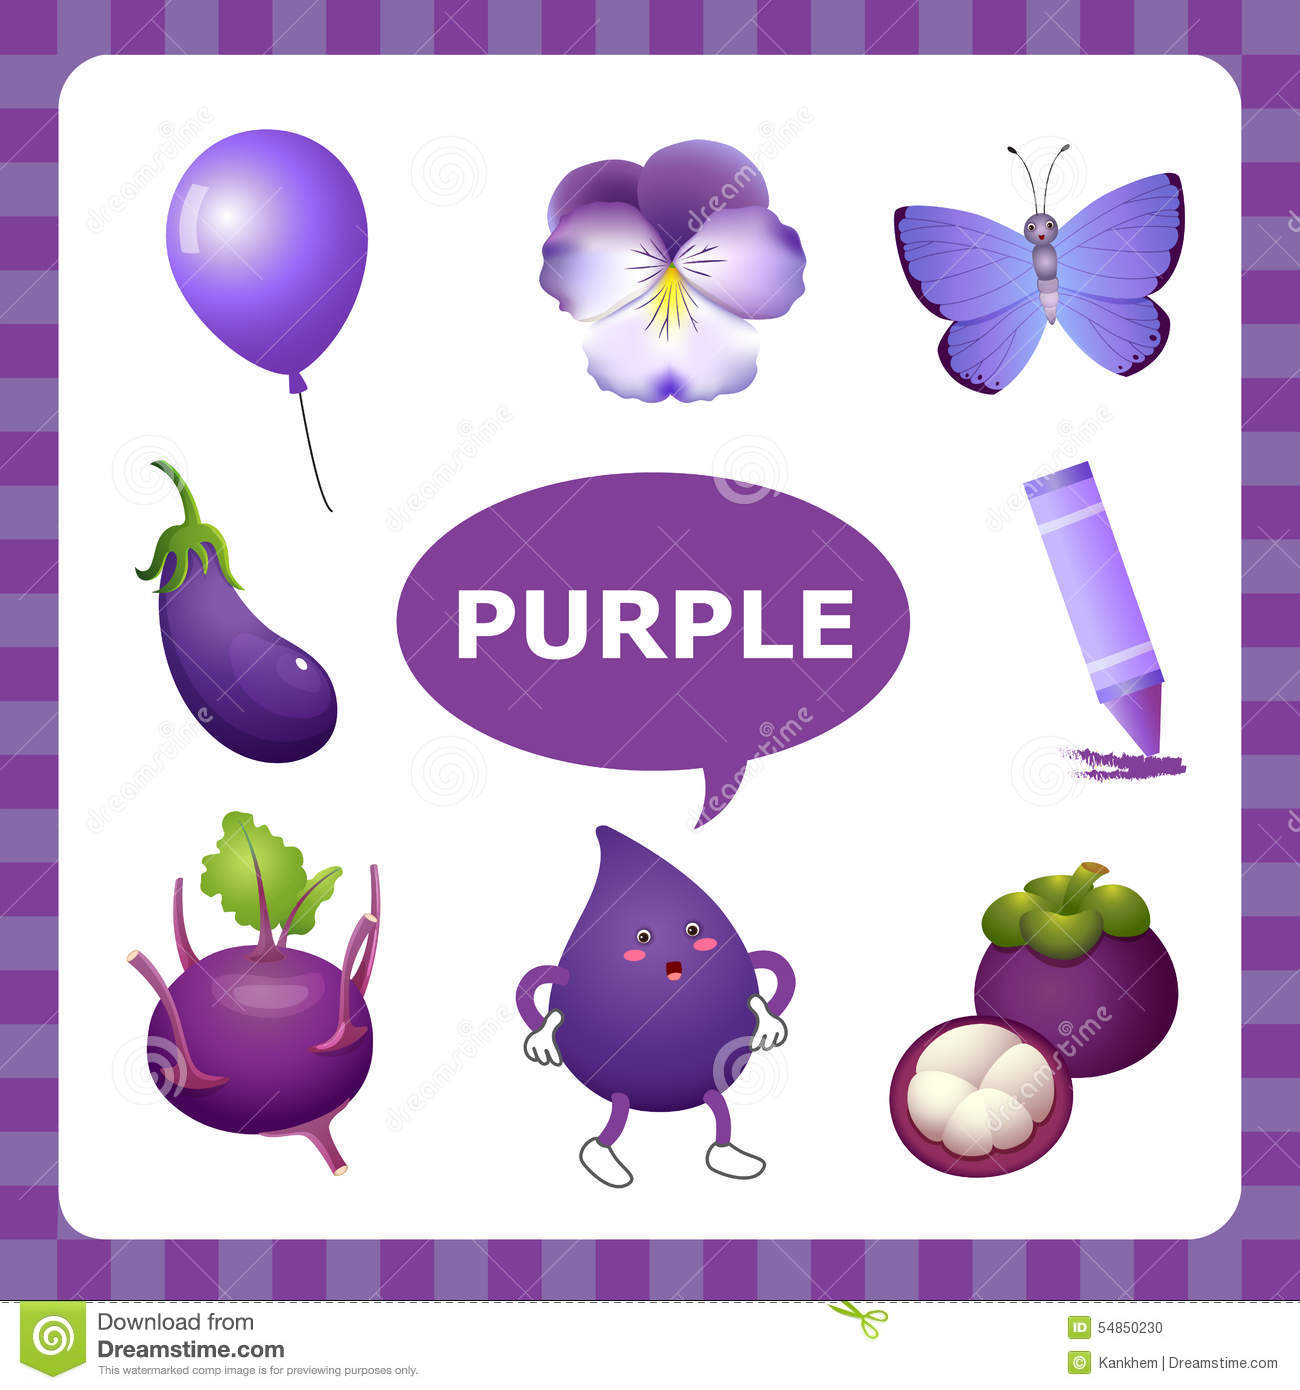 Violet things clipart 2 » Clipart Station.